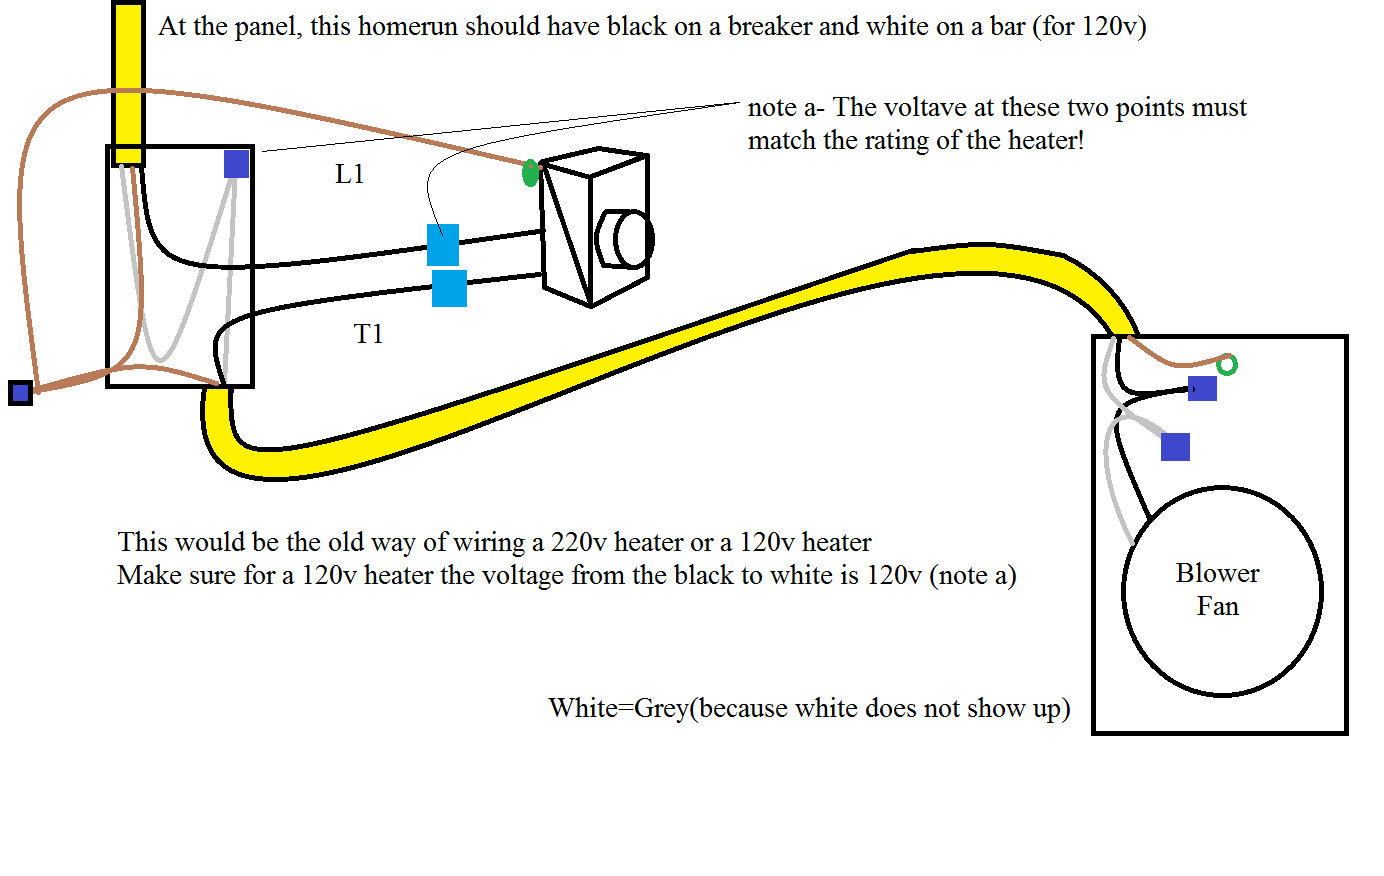 medium resolution of a house wired prior to 2008 would have the white wire wire nutted through even if it was 220v heater system where a house wired after 2008 the white wire